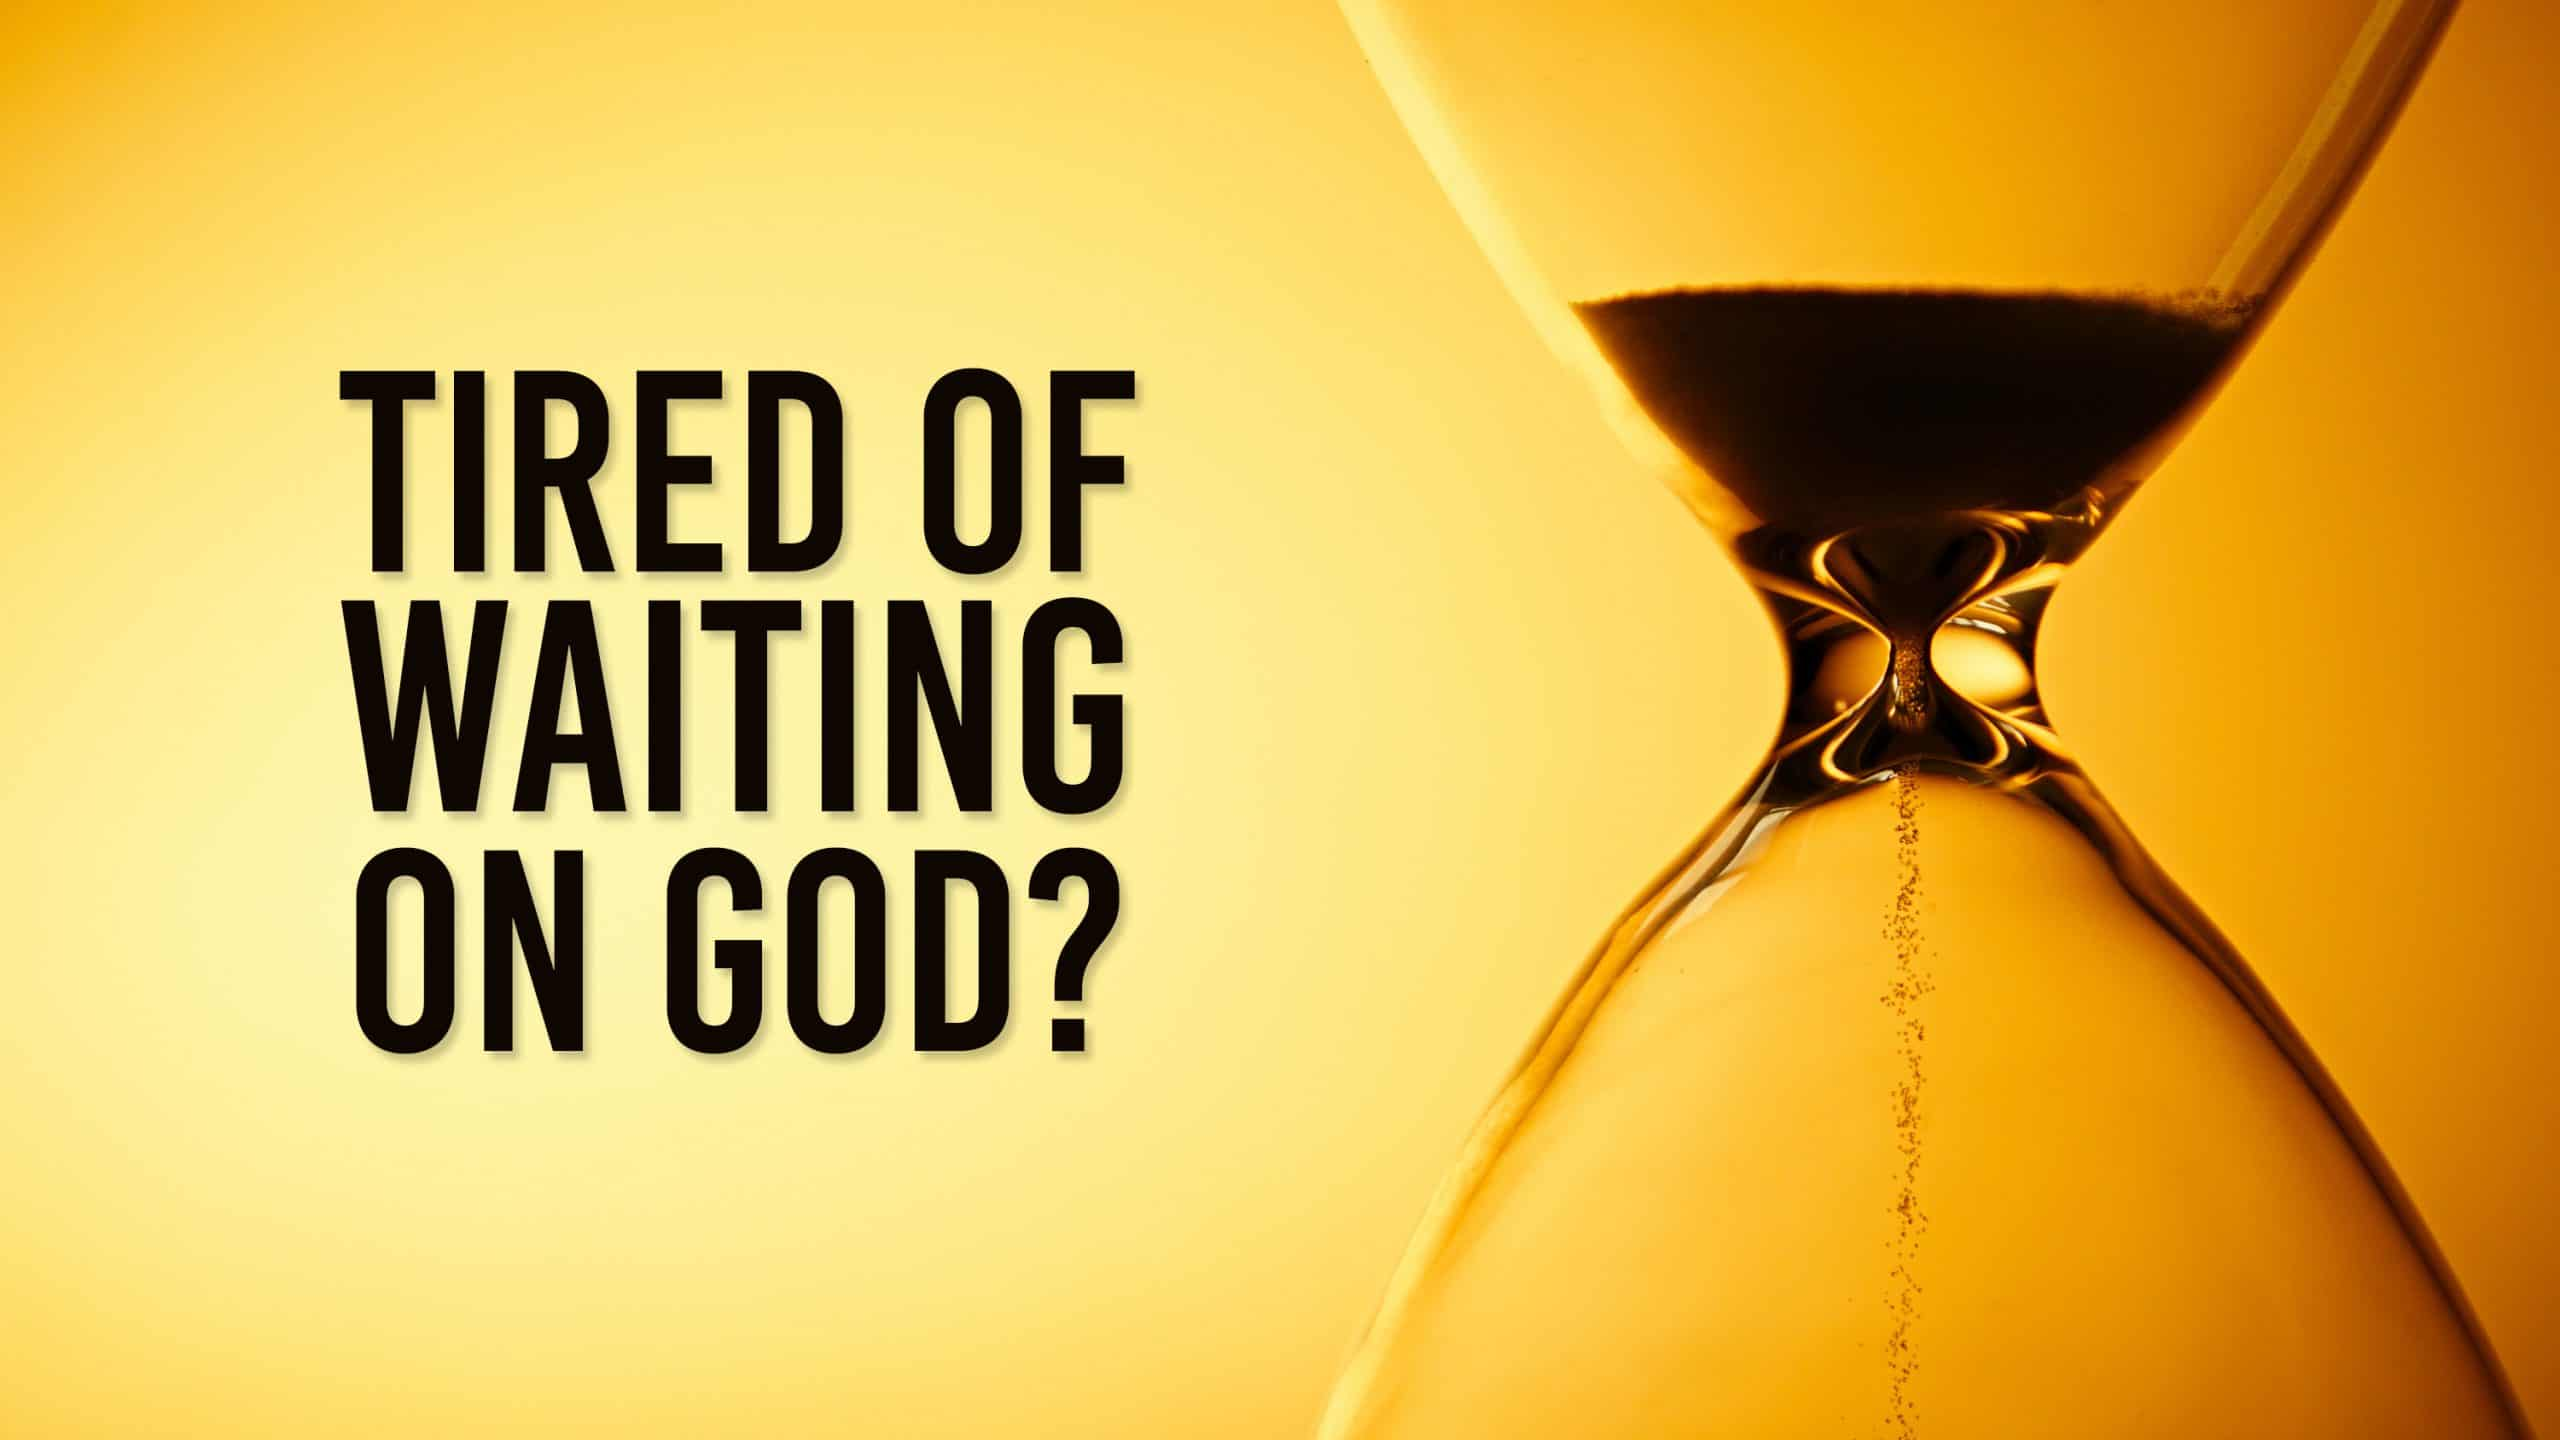 Tired of Waiting on God